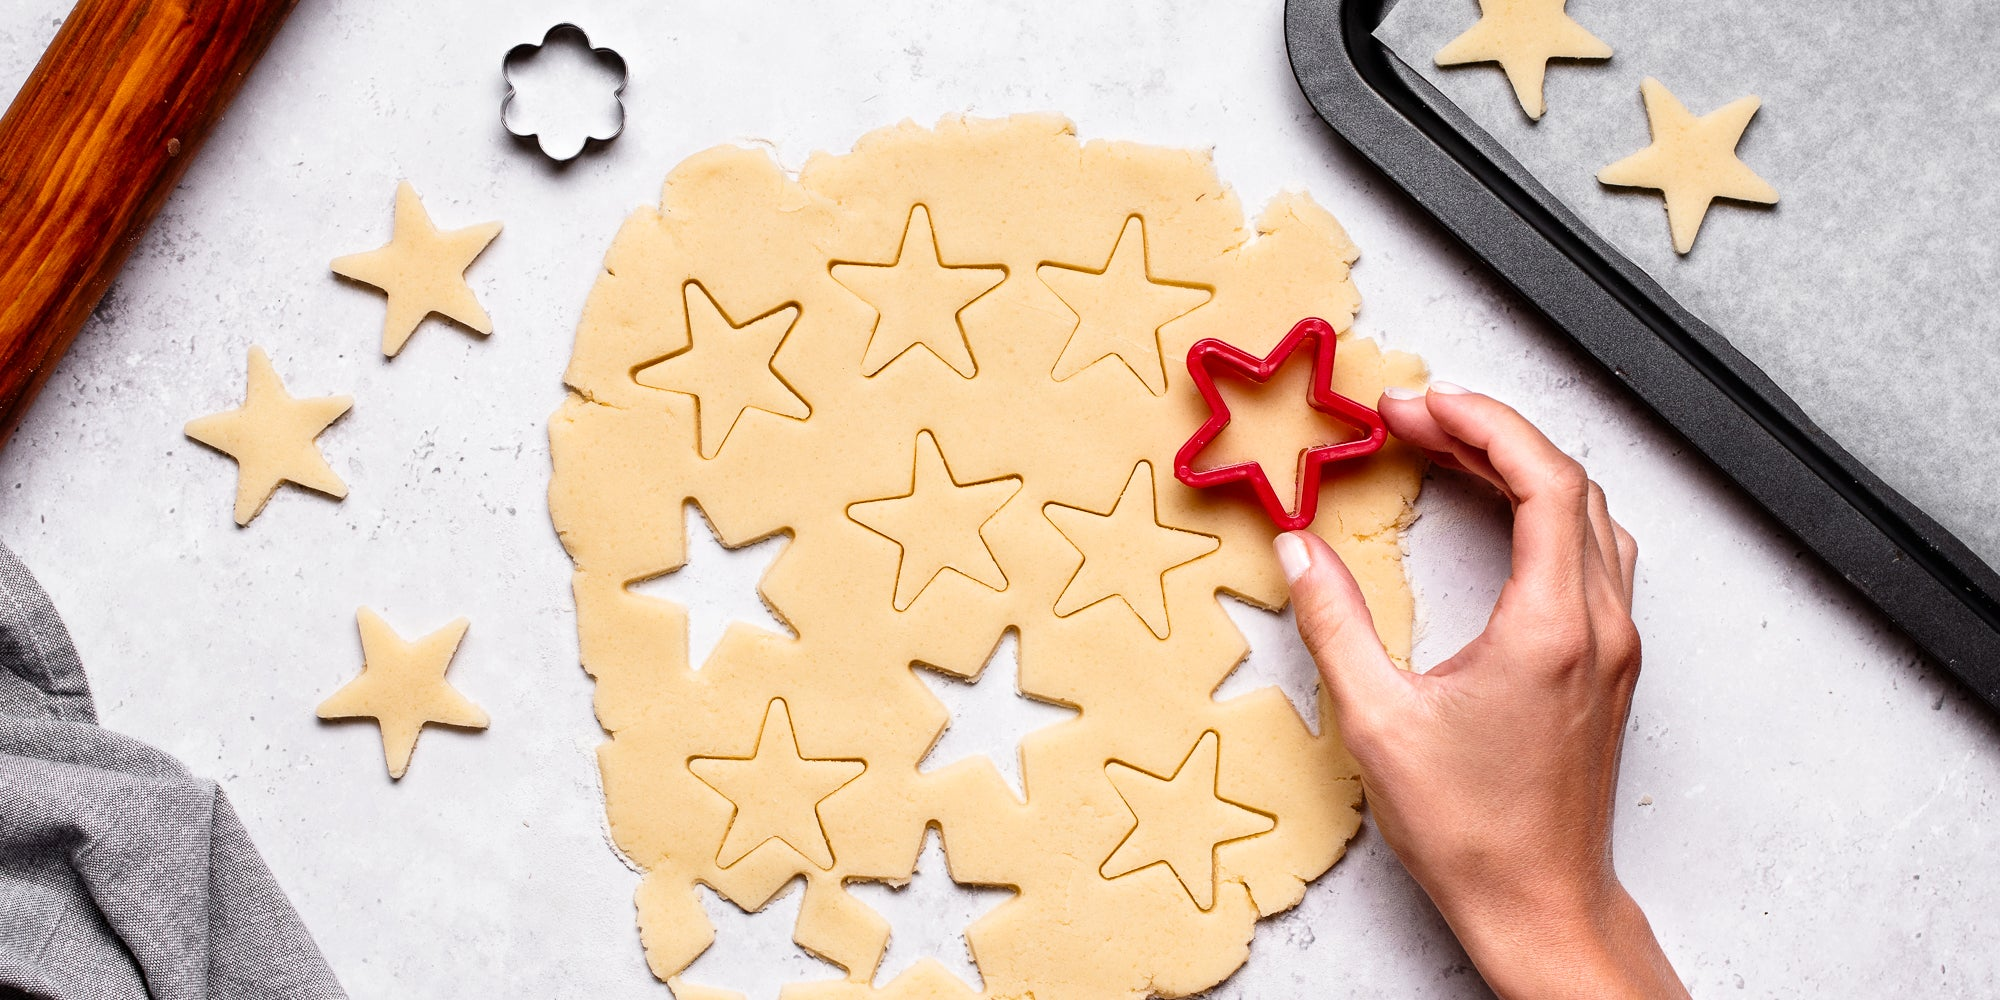 Top down view of a hand using a cookie cutter to cut out a star in vegan biscuit dough